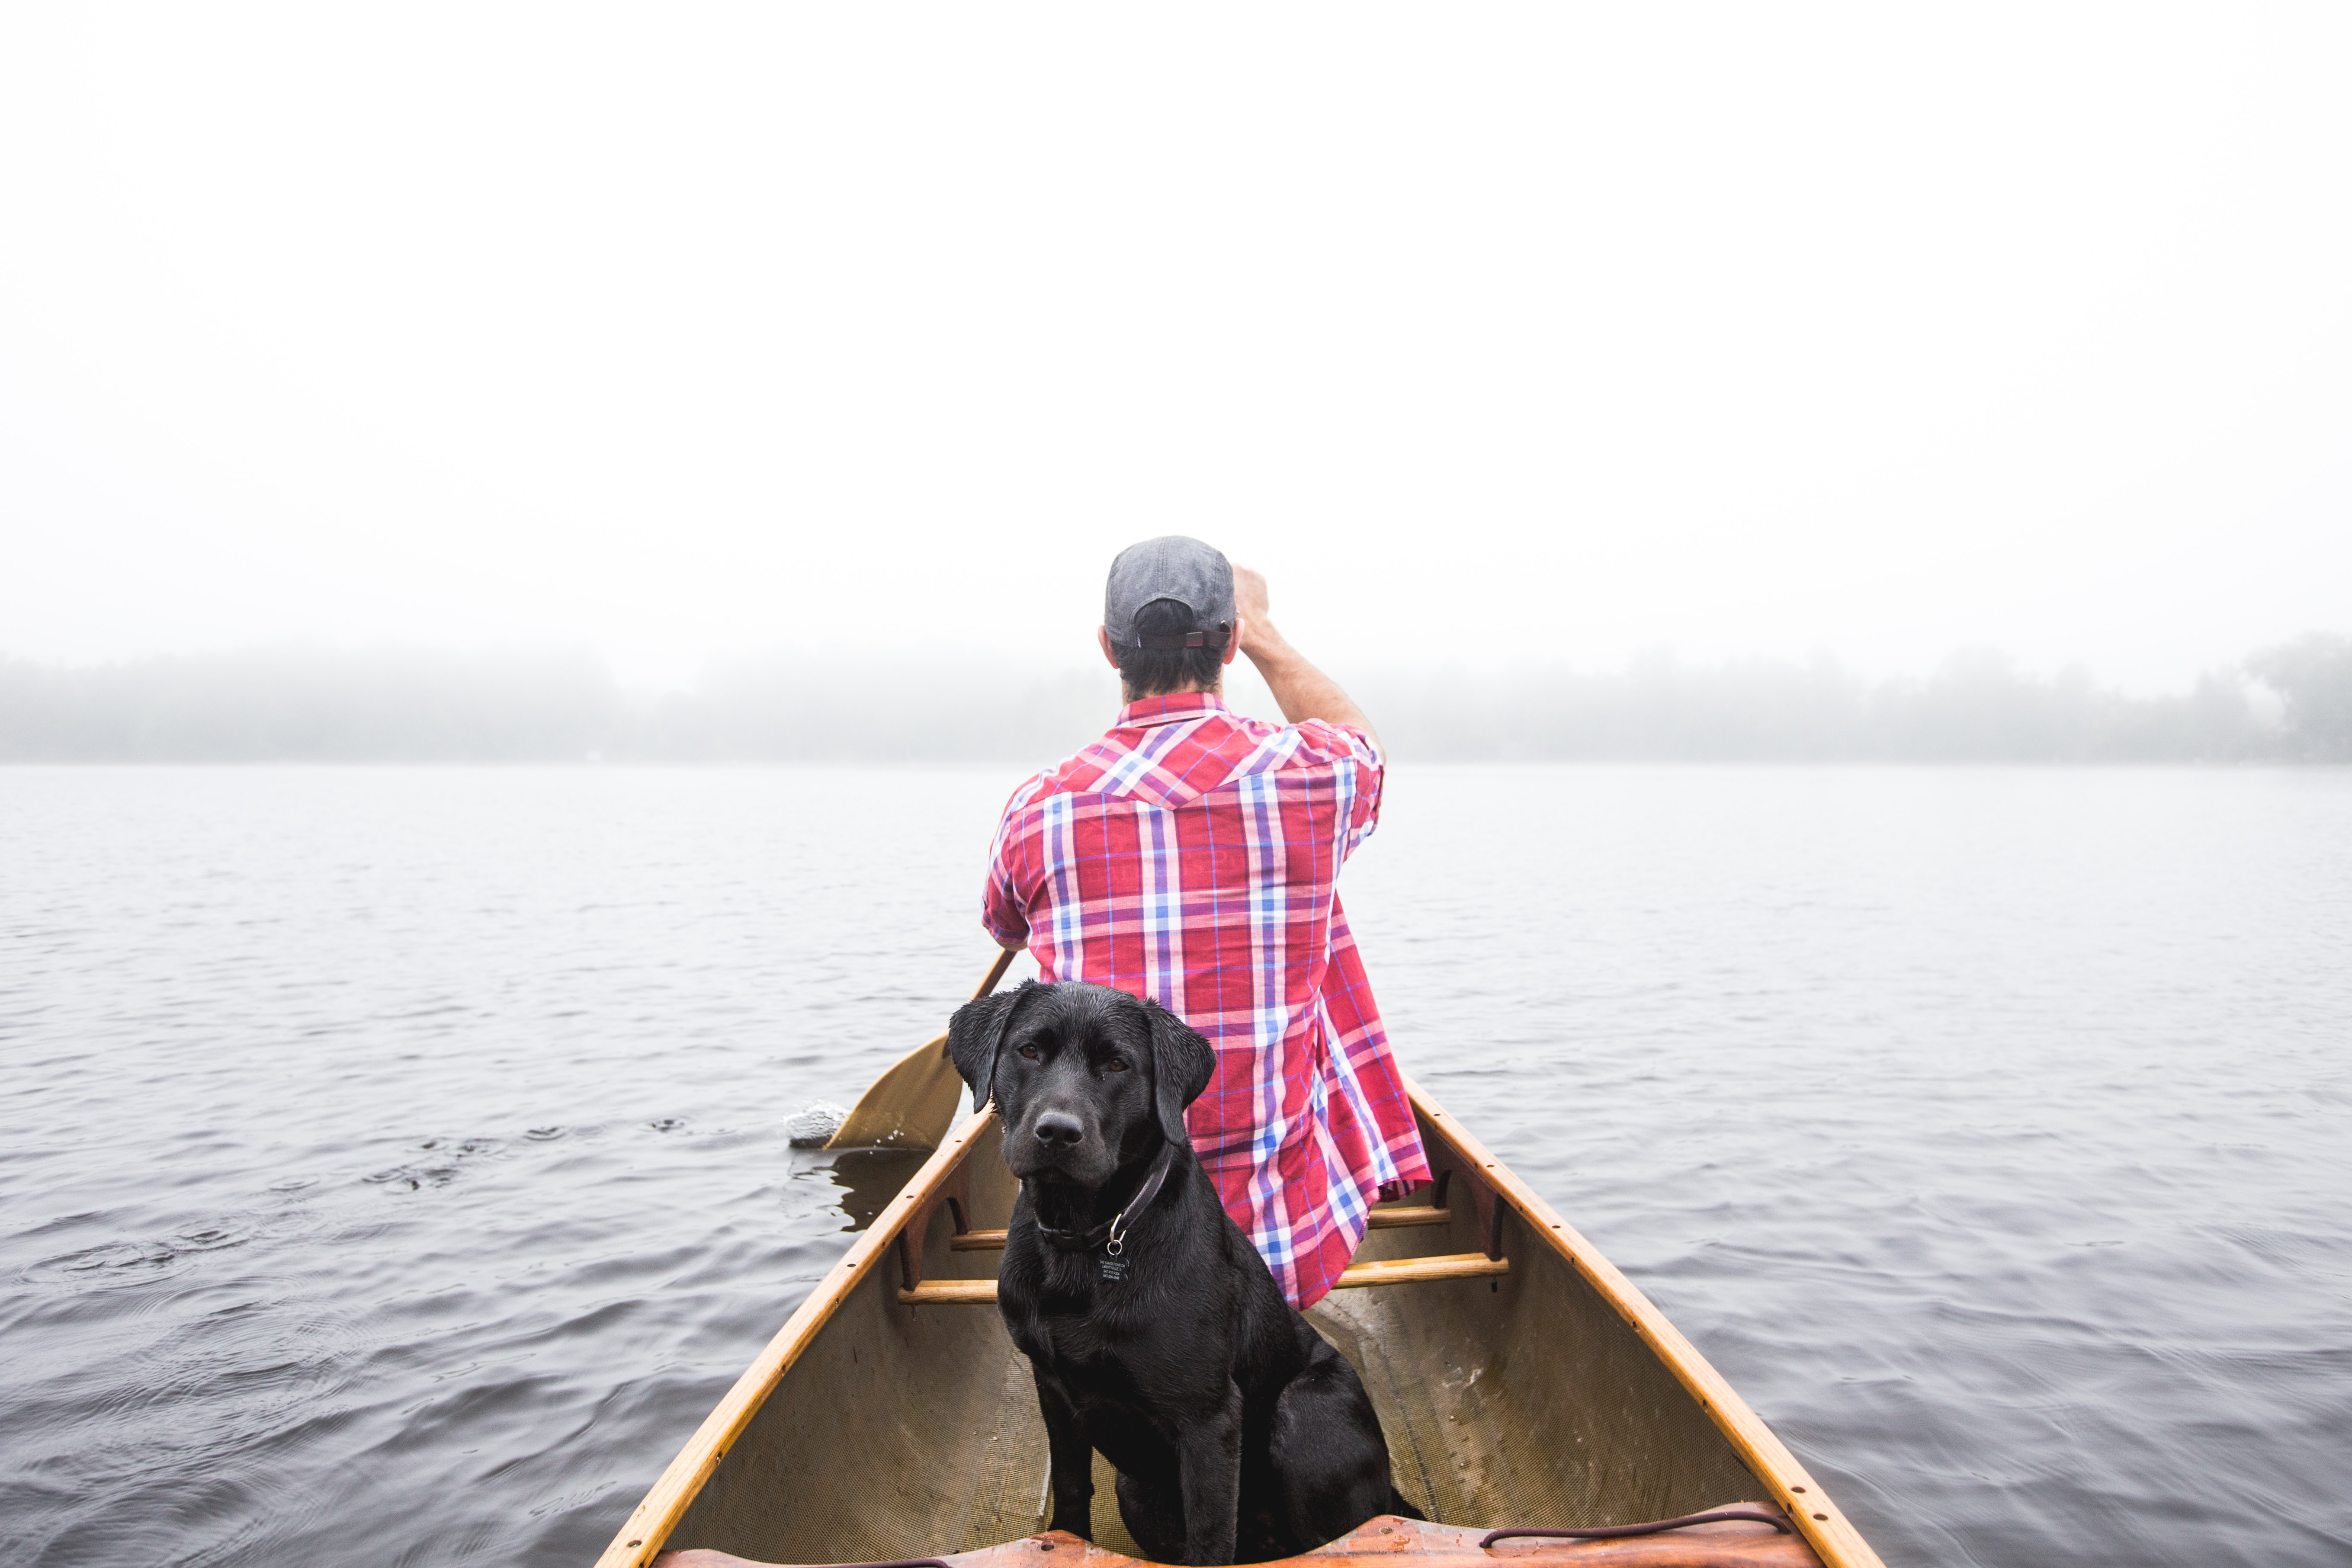 Labrador dog takes a boat ride with its owner on a calm lake